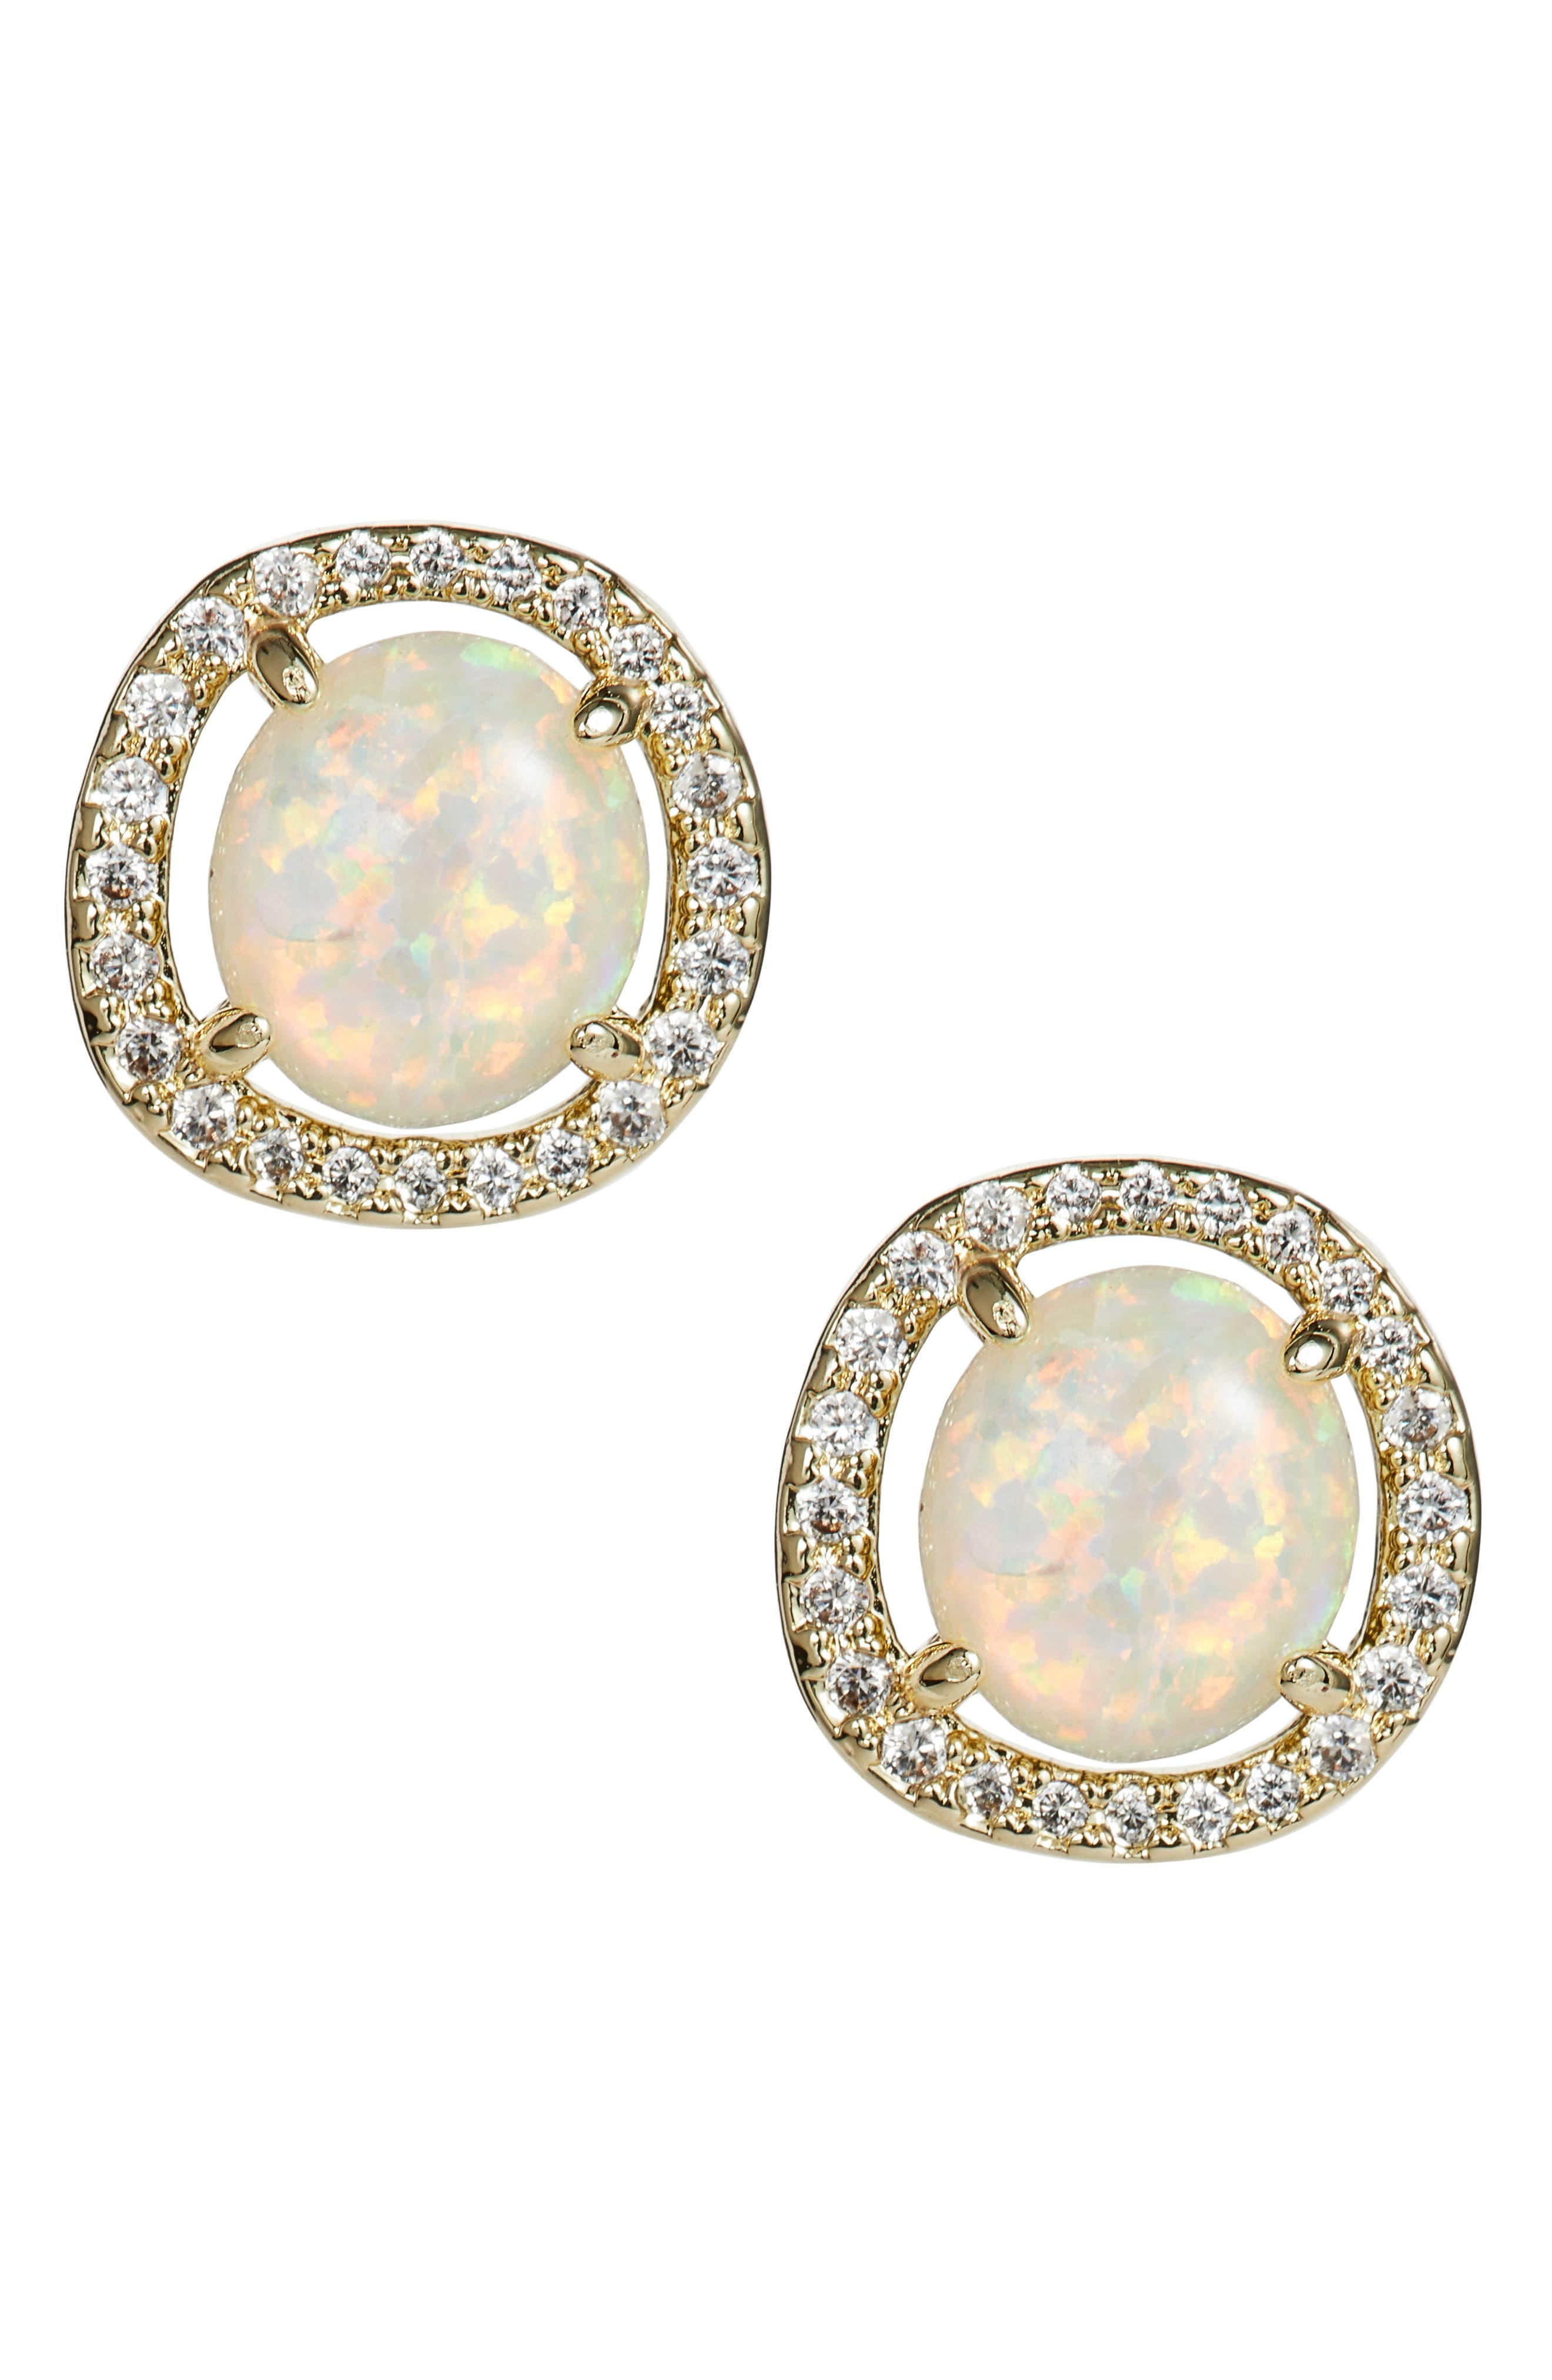 Sarah Louise Opal Stud Earrings,                             Main thumbnail 1, color,                             White Opal/ Gold